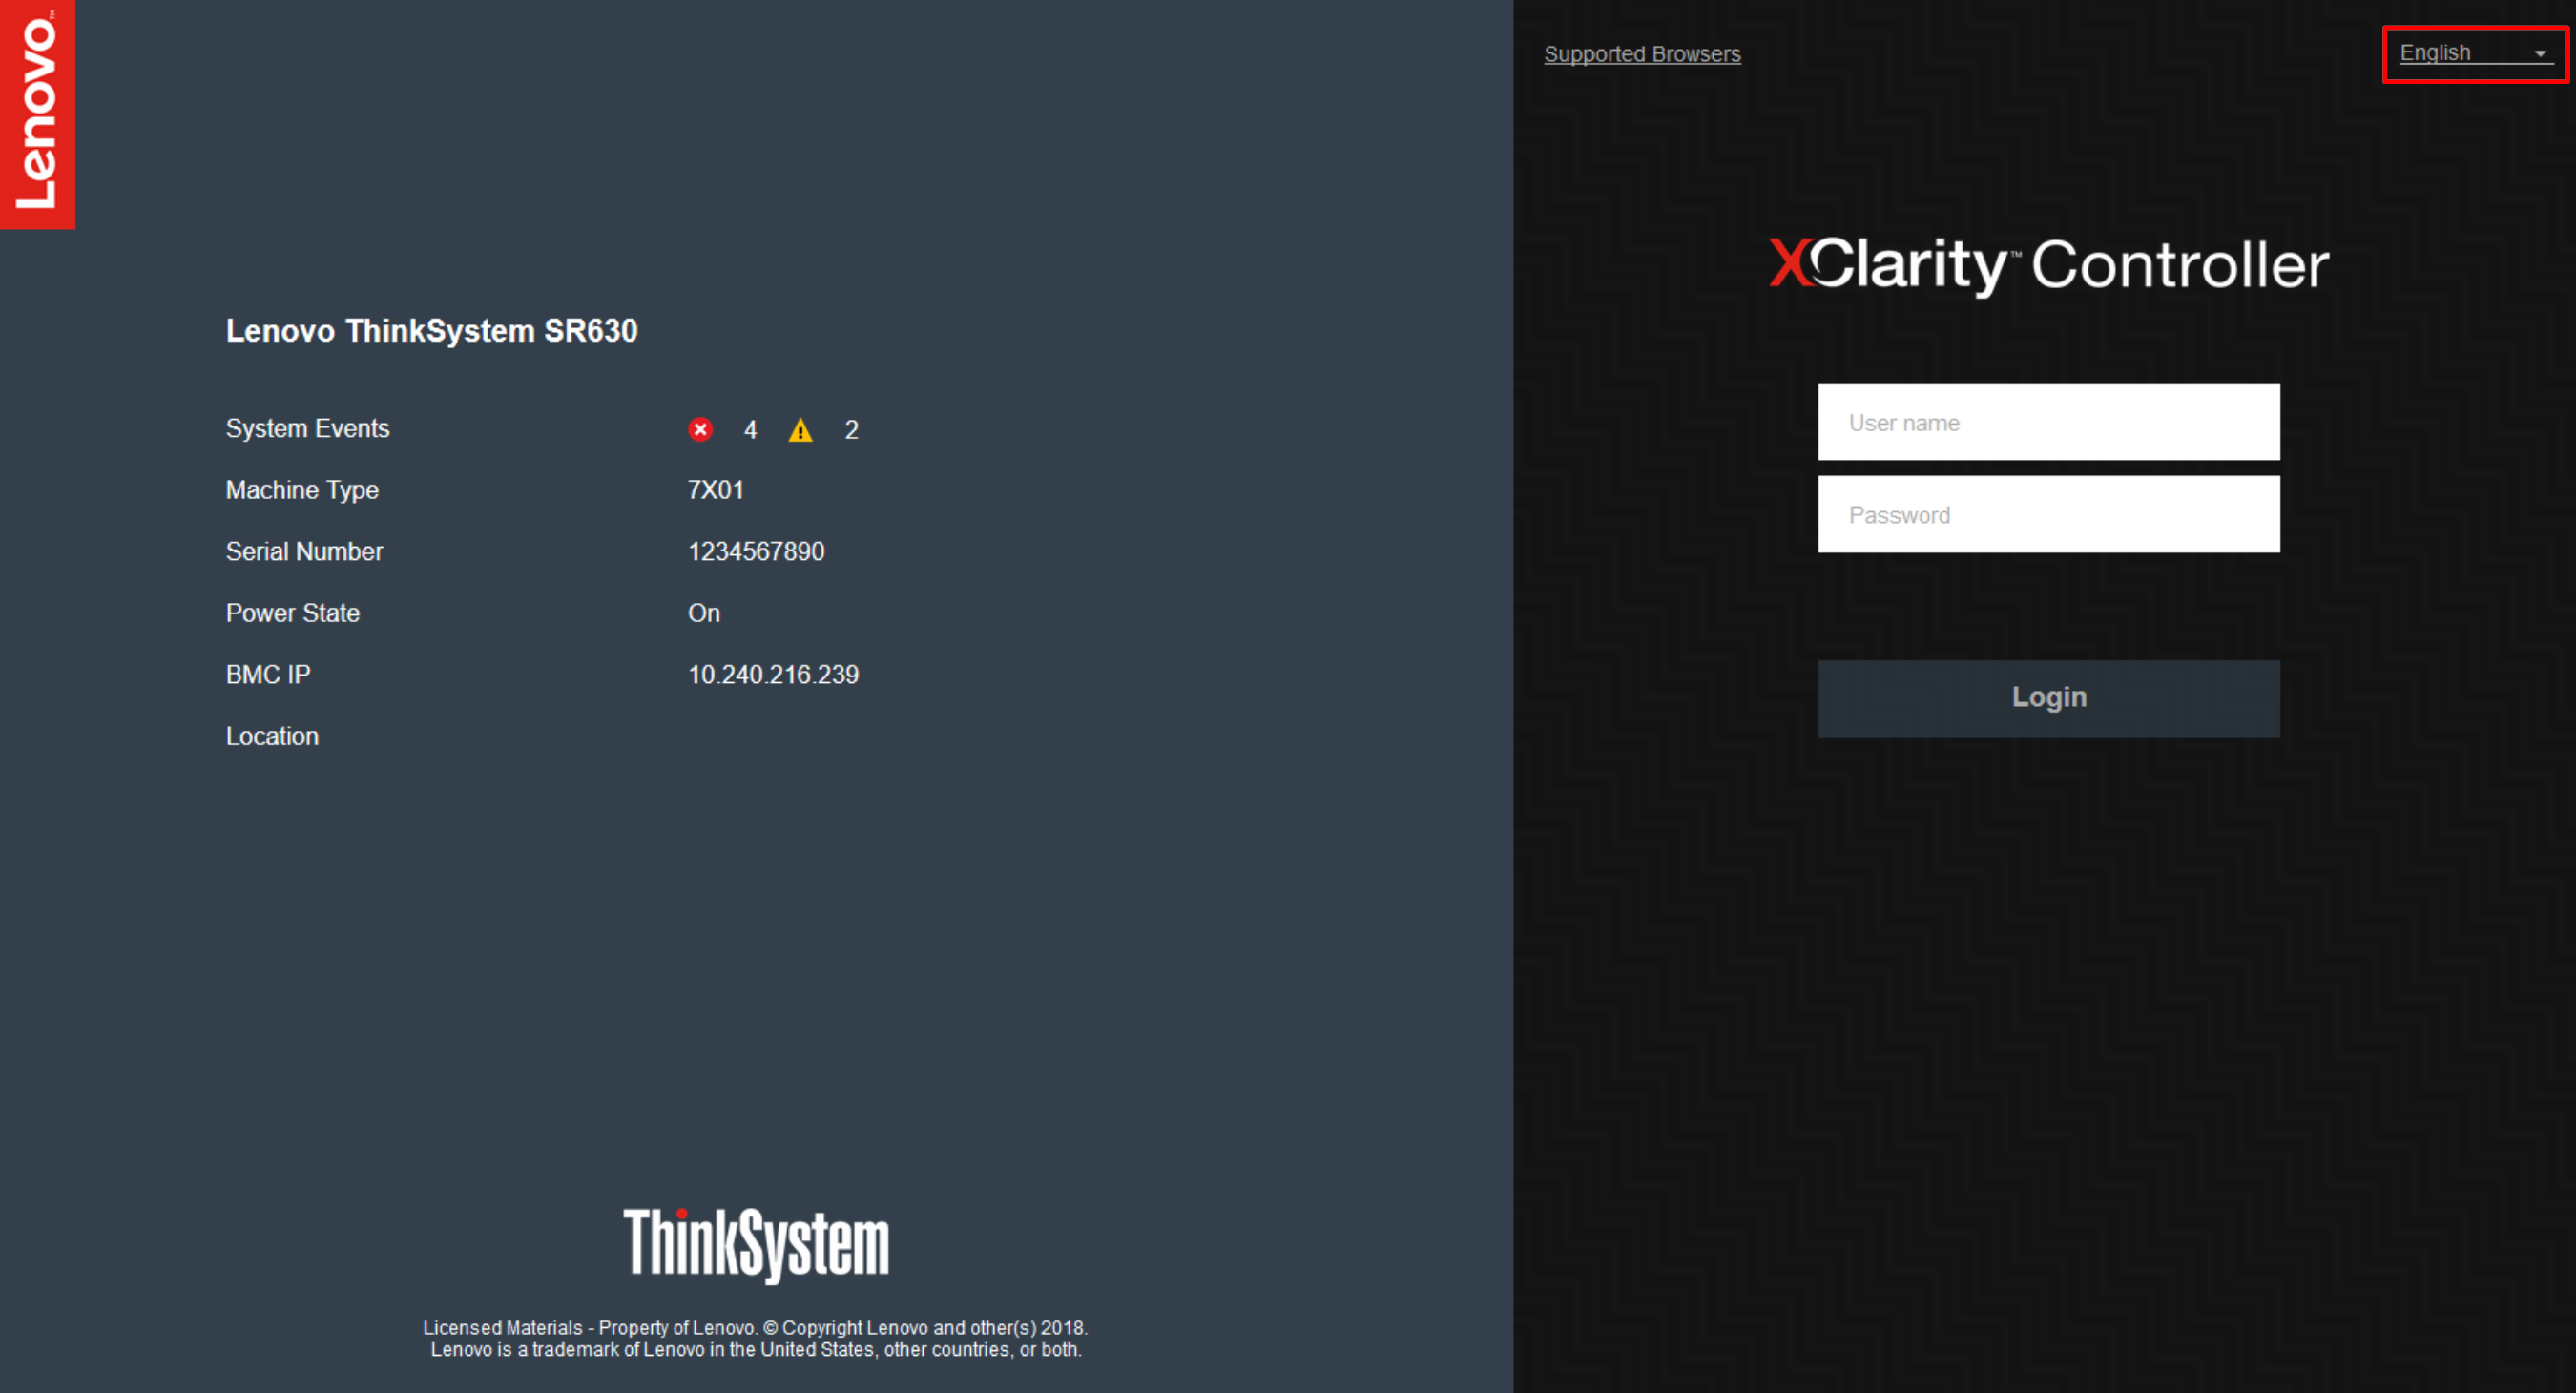 Logging in to the XClarity Controller - XClarity Controller